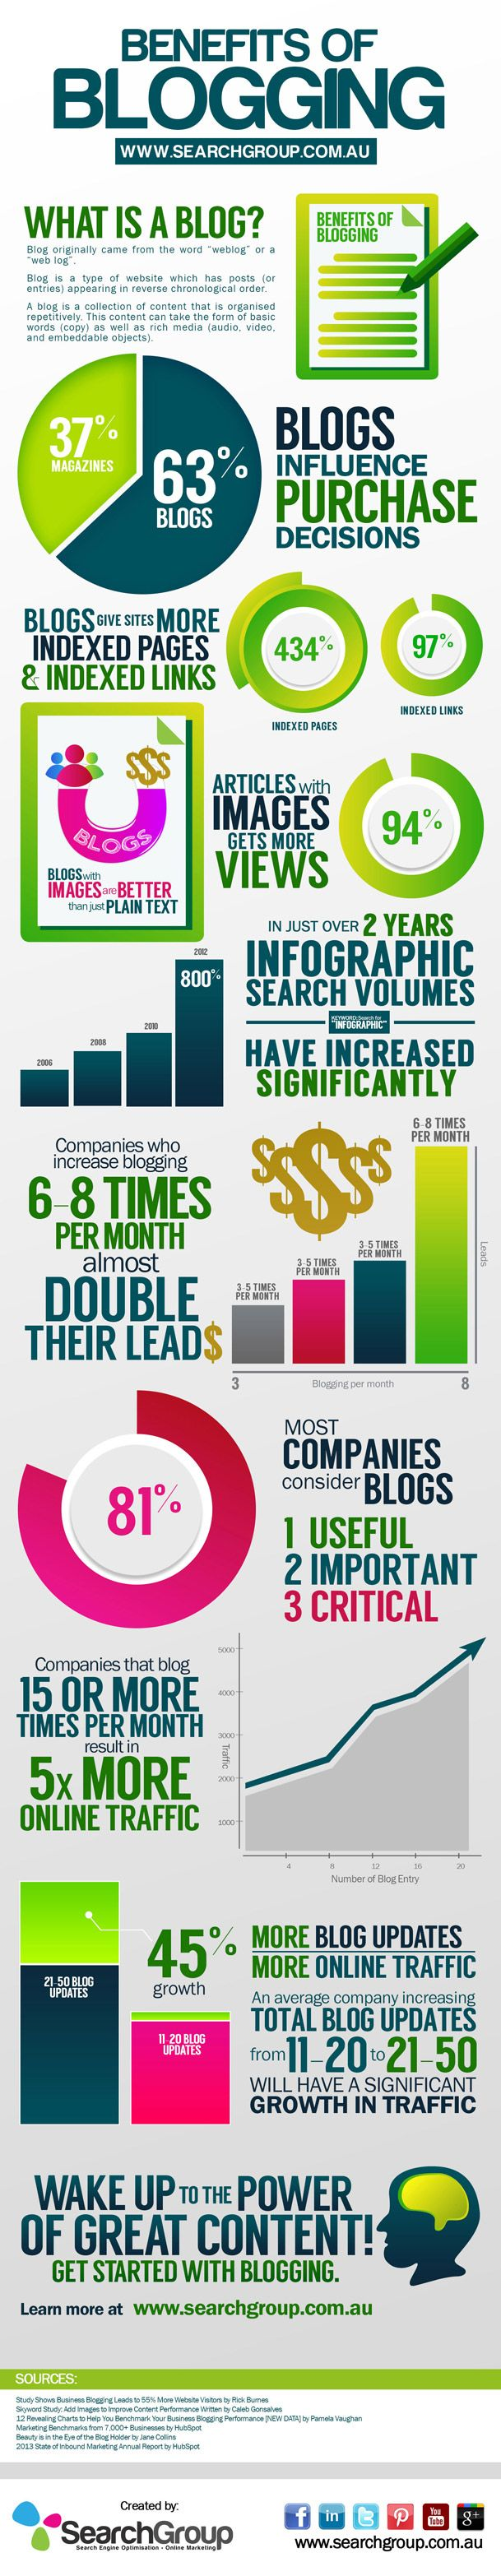 Benefits of Blogging by Search Group